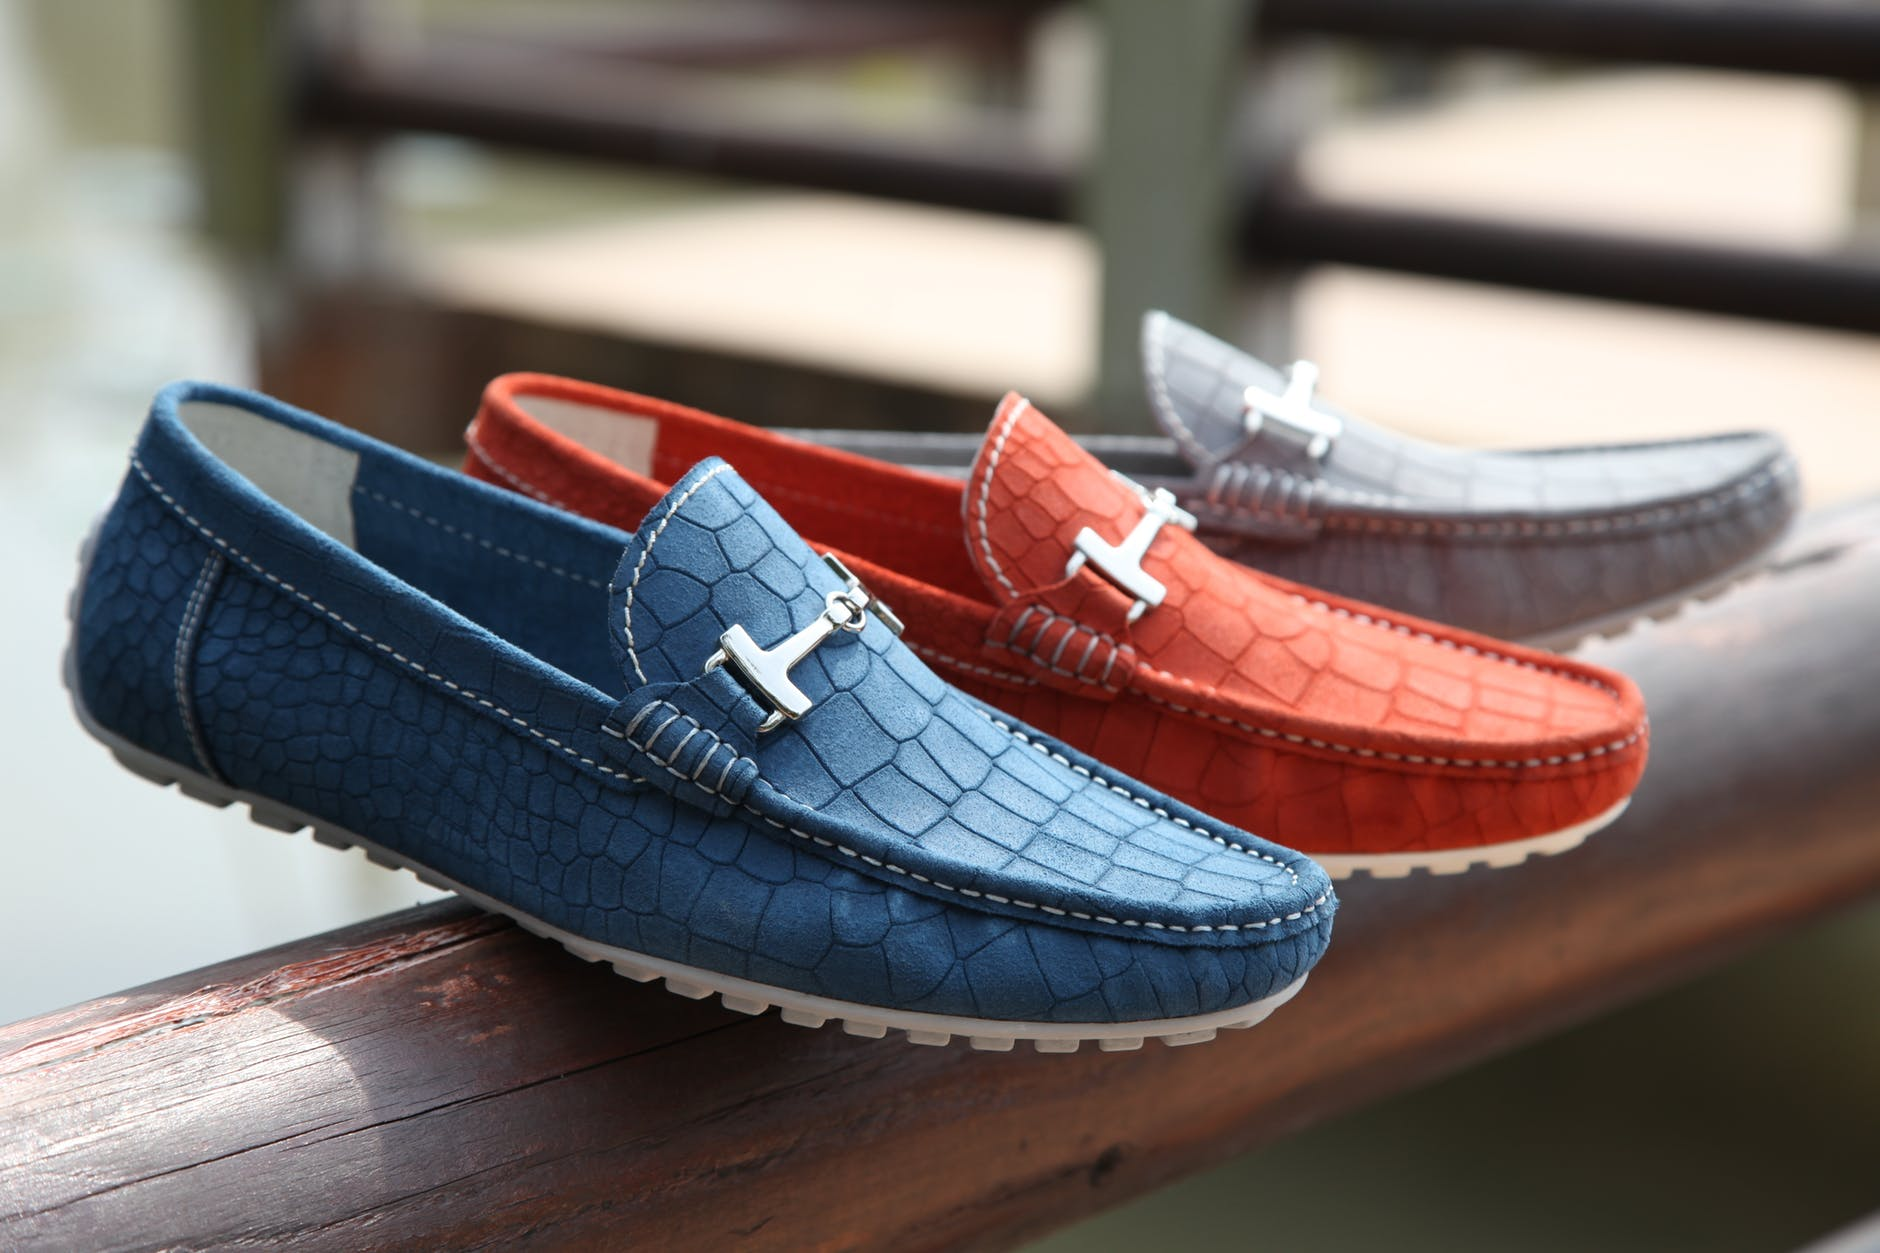 Color blue, red and gray shoes